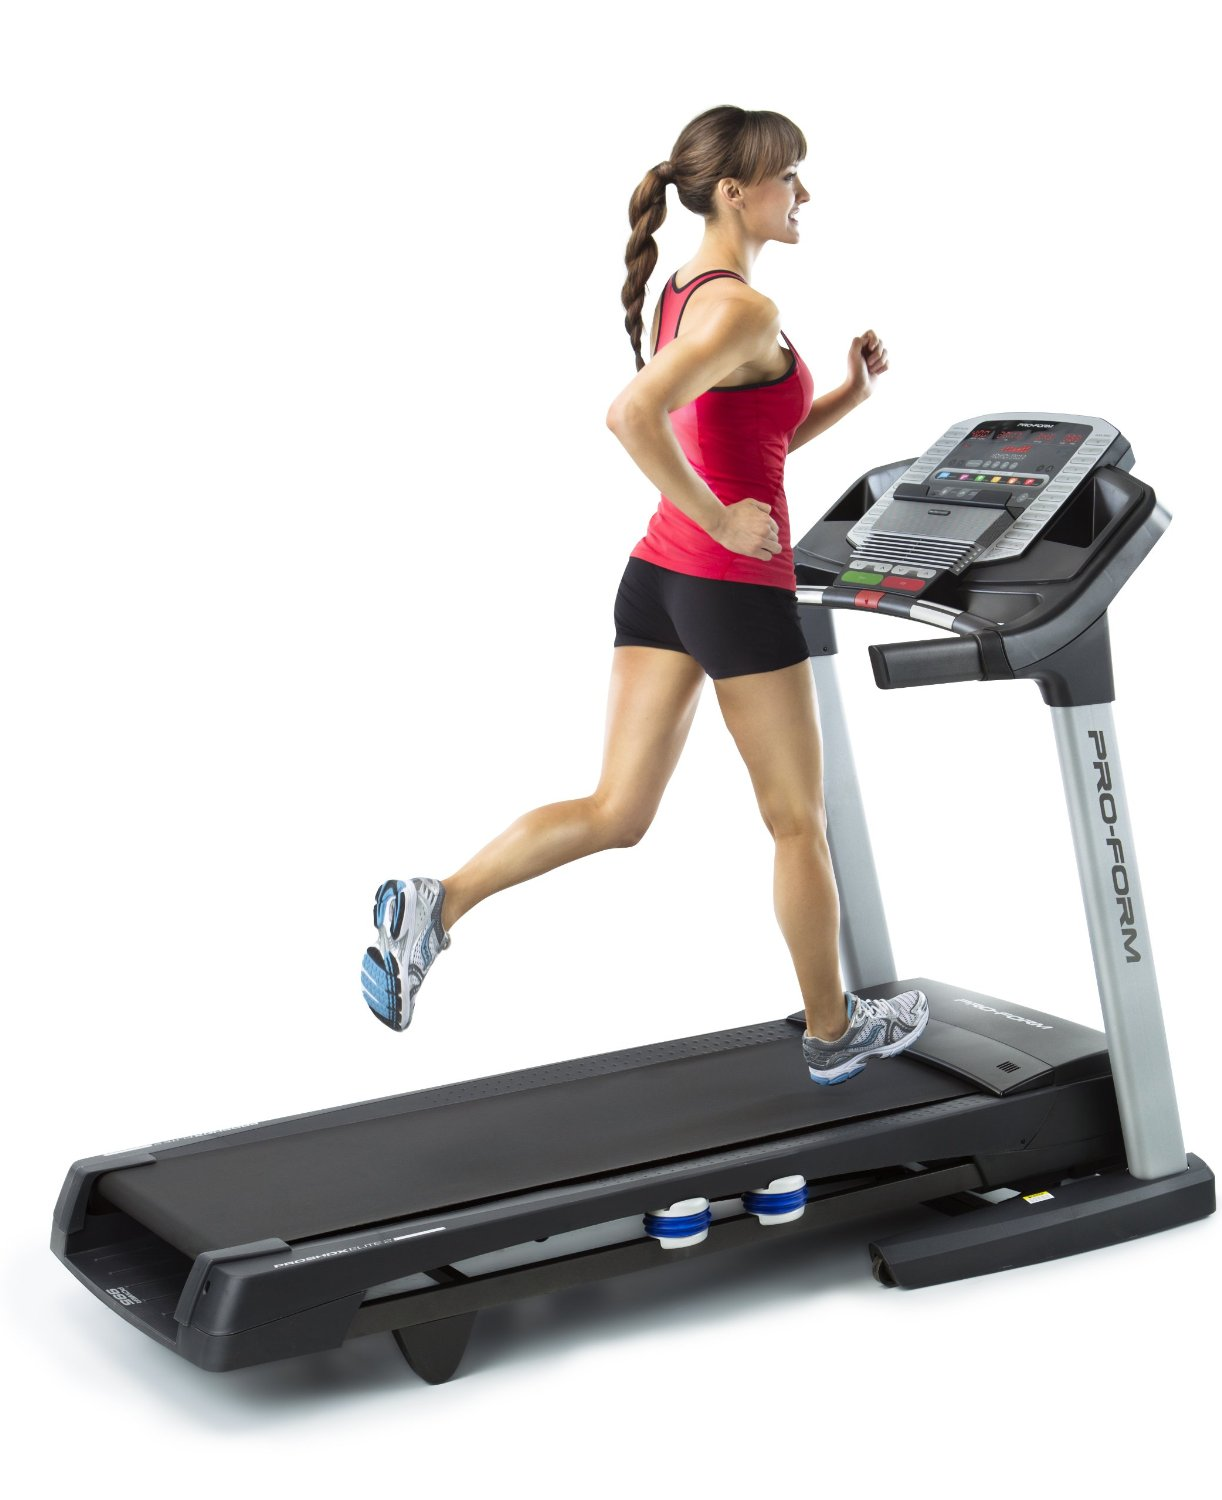 PROFORM POWER 995 TREADMILL ON SALE AT CHEAPEST PRICE WITH